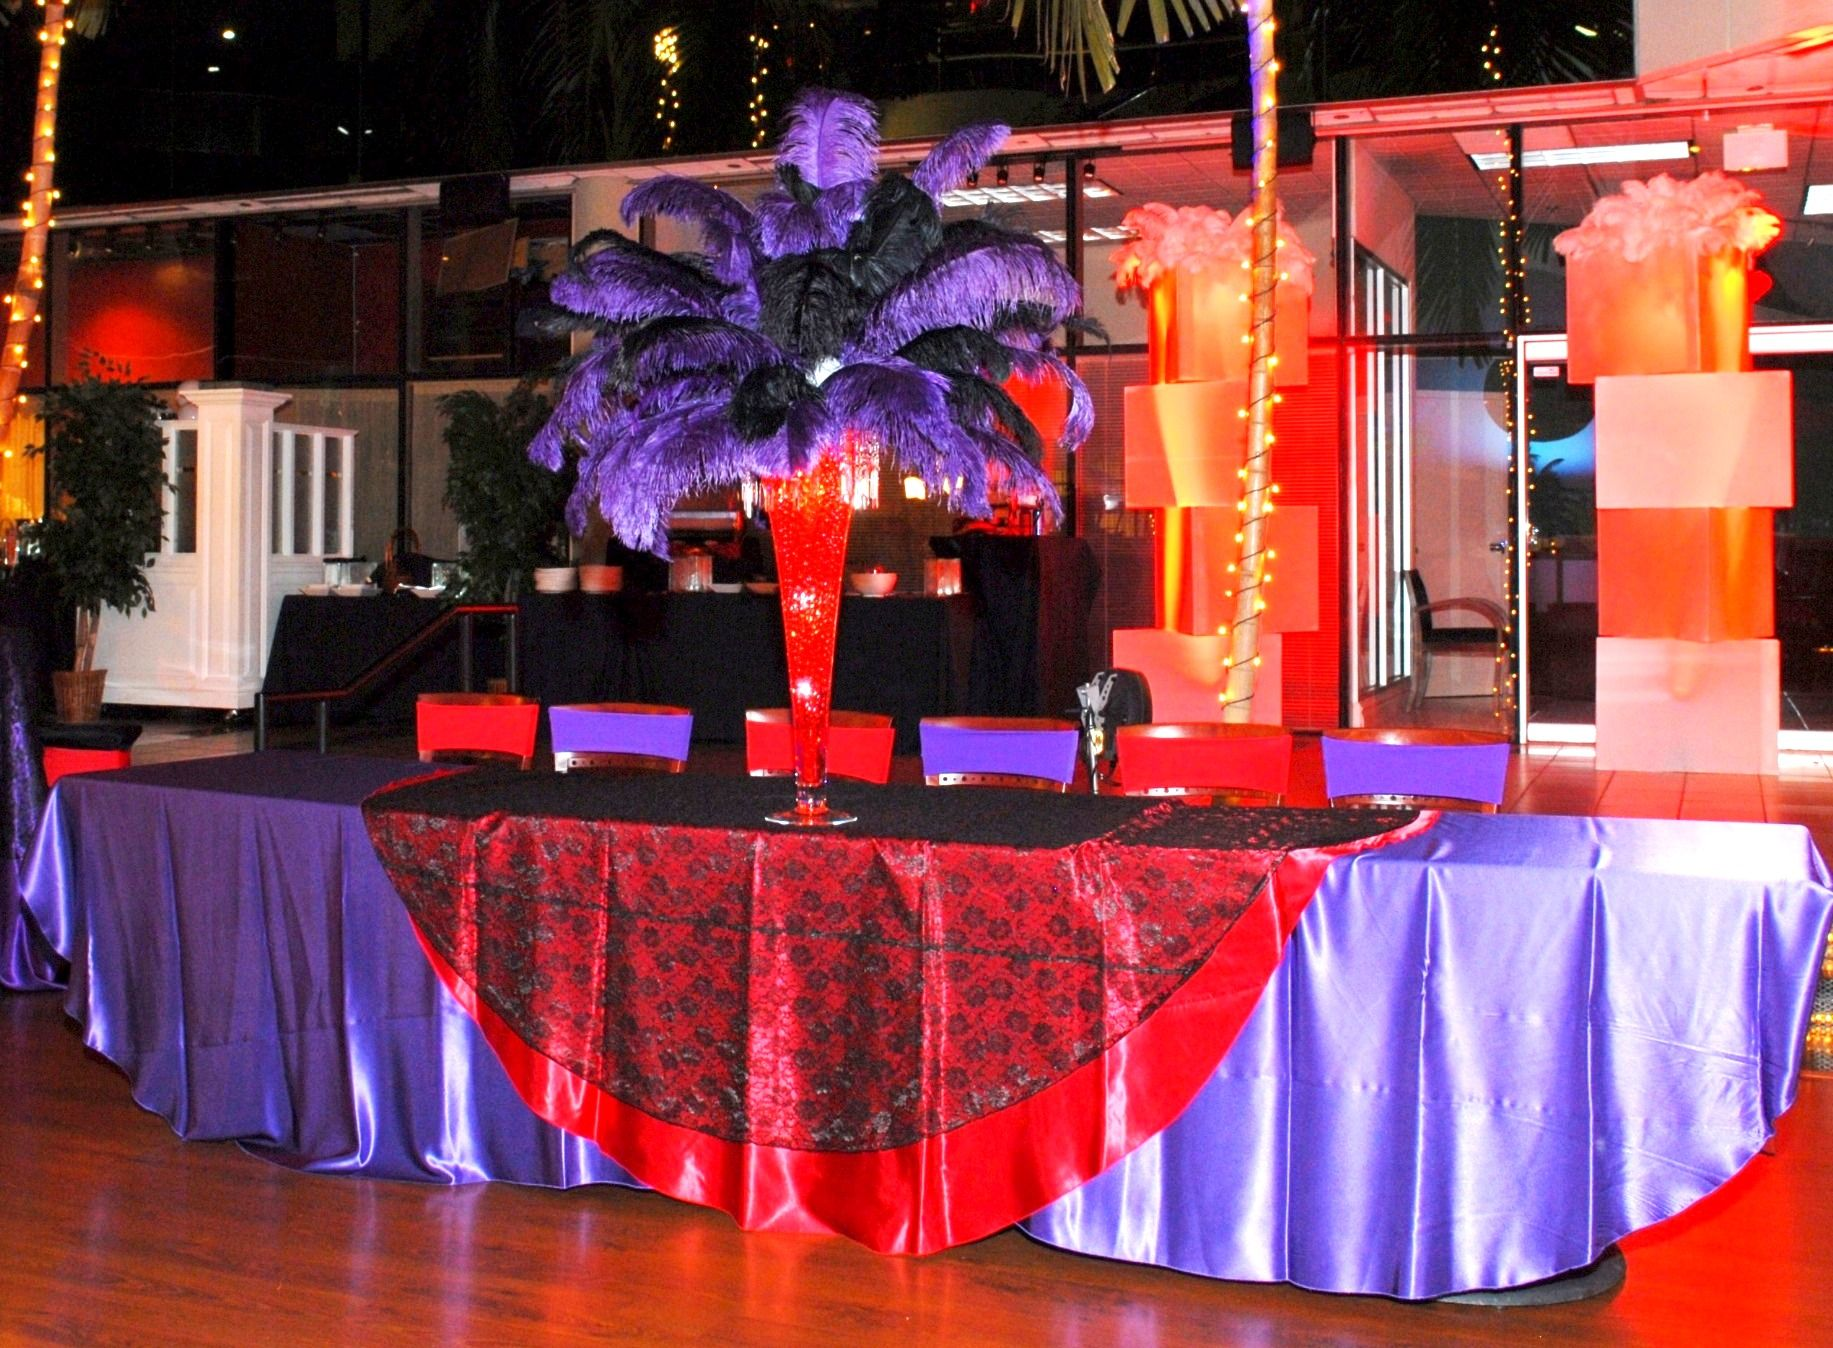 Beautiful Decor At Annamarie S Sweet Sixteen Paviliongrille Bocaraton Quinceanera Party Bar Mitzvah Quinceanera